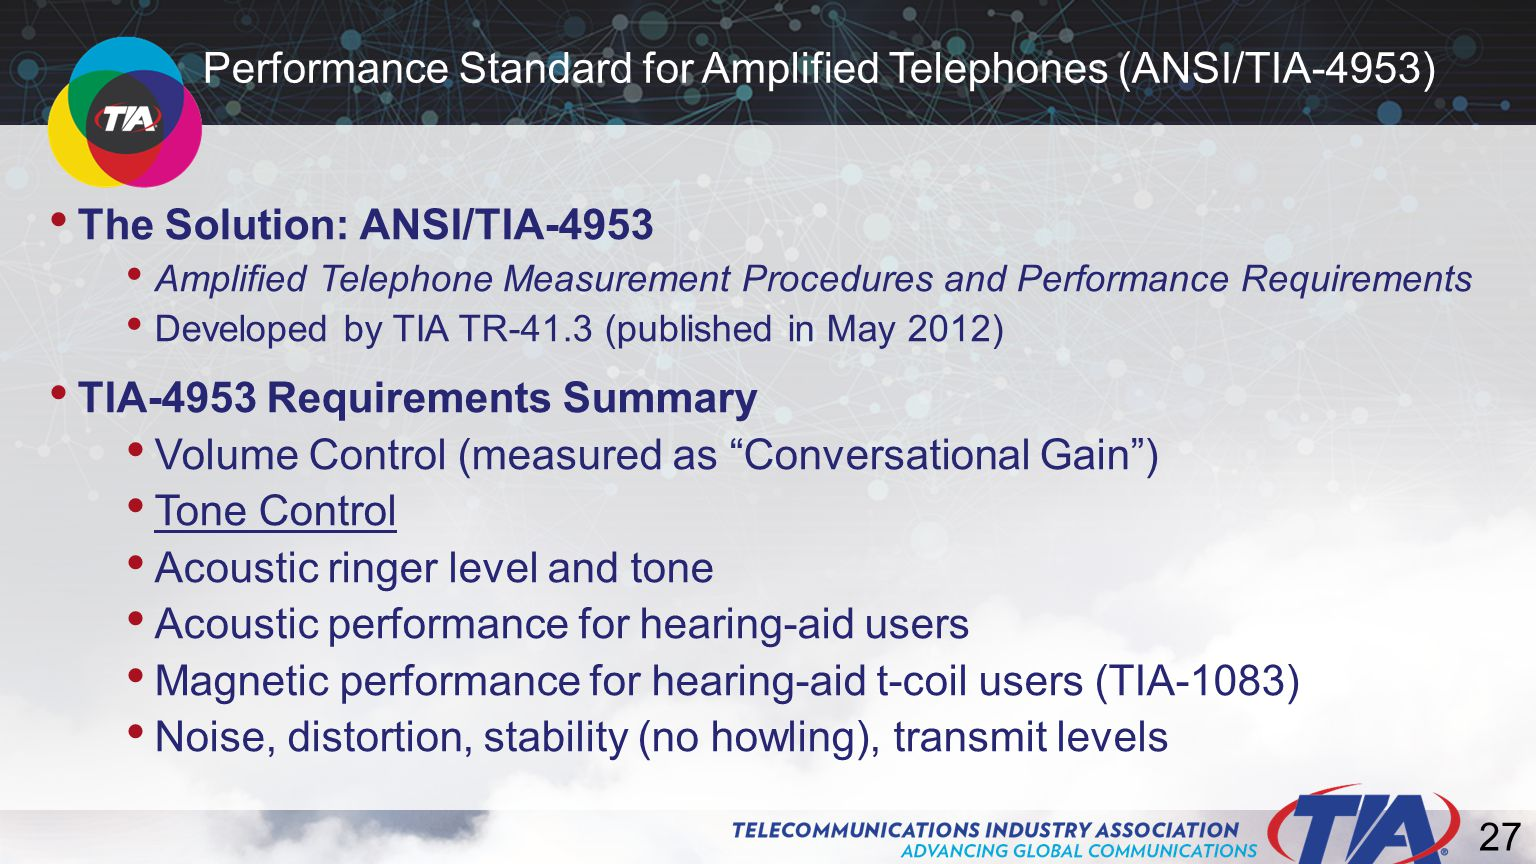 27 The Solution: ANSI/TIA-4953 Amplified Telephone Measurement Procedures and Performance Requirements Developed by TIA TR-41.3 (published in May 2012) TIA-4953 Requirements Summary Volume Control (measured as Conversational Gain ) Tone Control Acoustic ringer level and tone Acoustic performance for hearing-aid users Magnetic performance for hearing-aid t-coil users (TIA-1083) Noise, distortion, stability (no howling), transmit levels Performance Standard for Amplified Telephones (ANSI/TIA-4953)